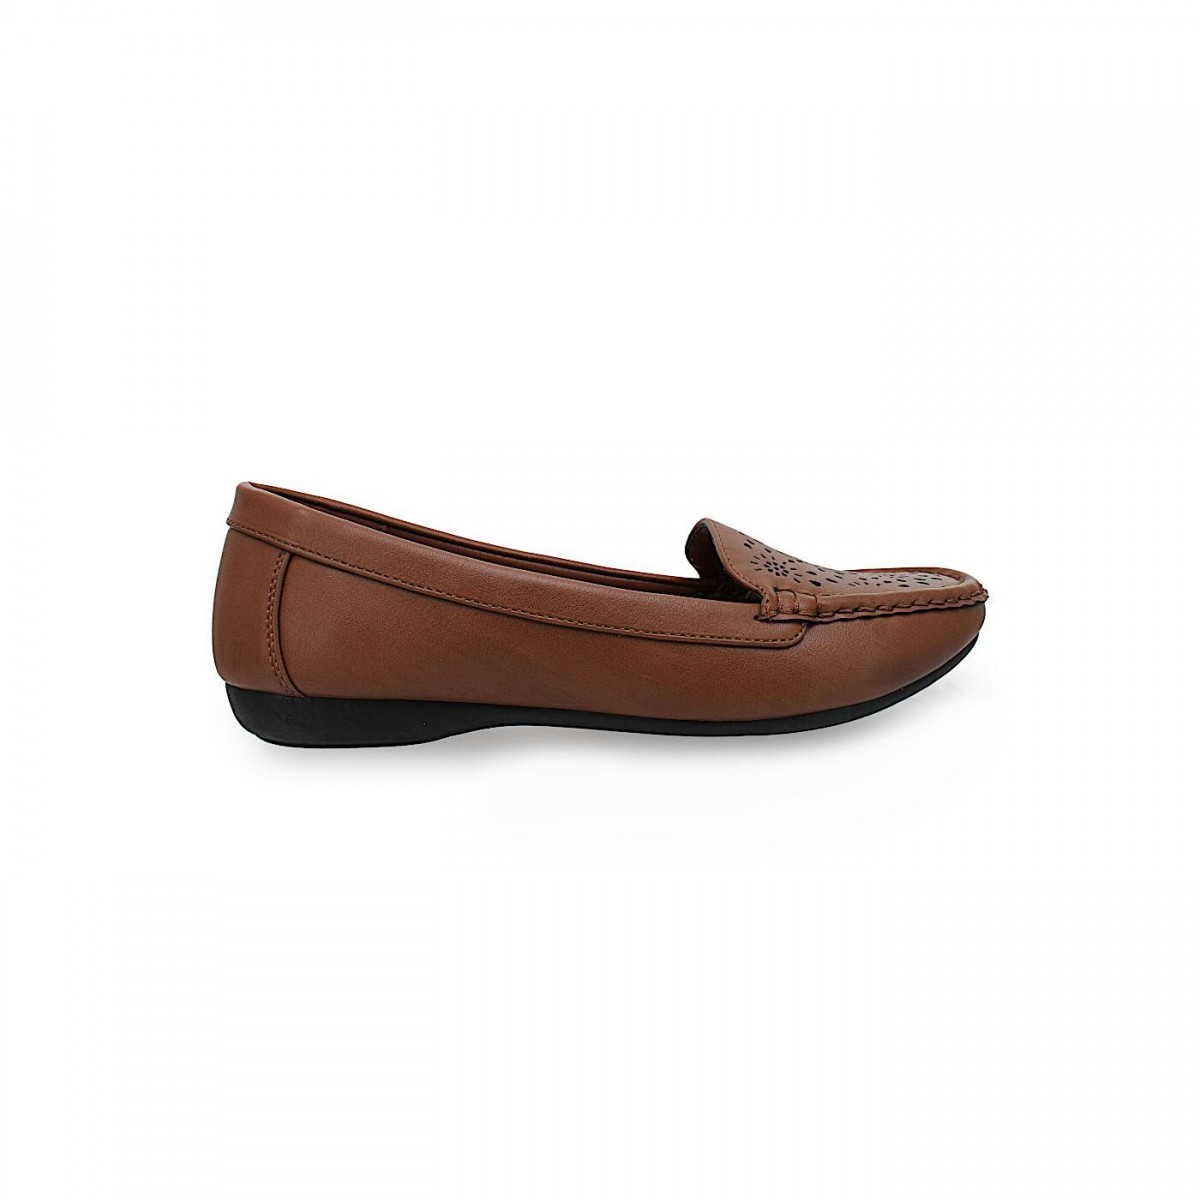 Ndure Perforated Casual Loafers Nd Cf